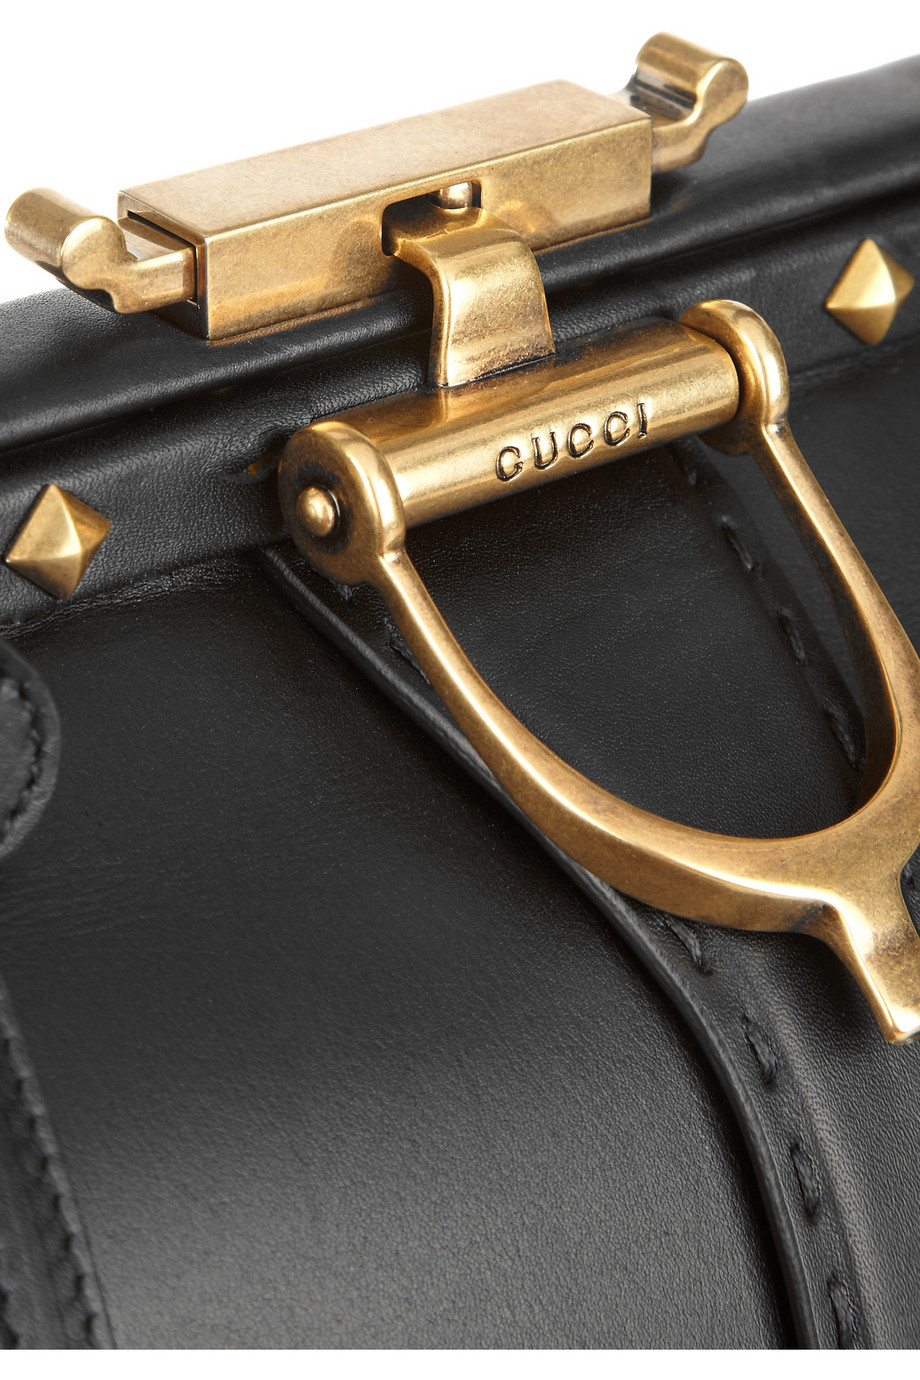 Gucci Lady Stirrup Studded Leather Doctor Bag In Black Lyst